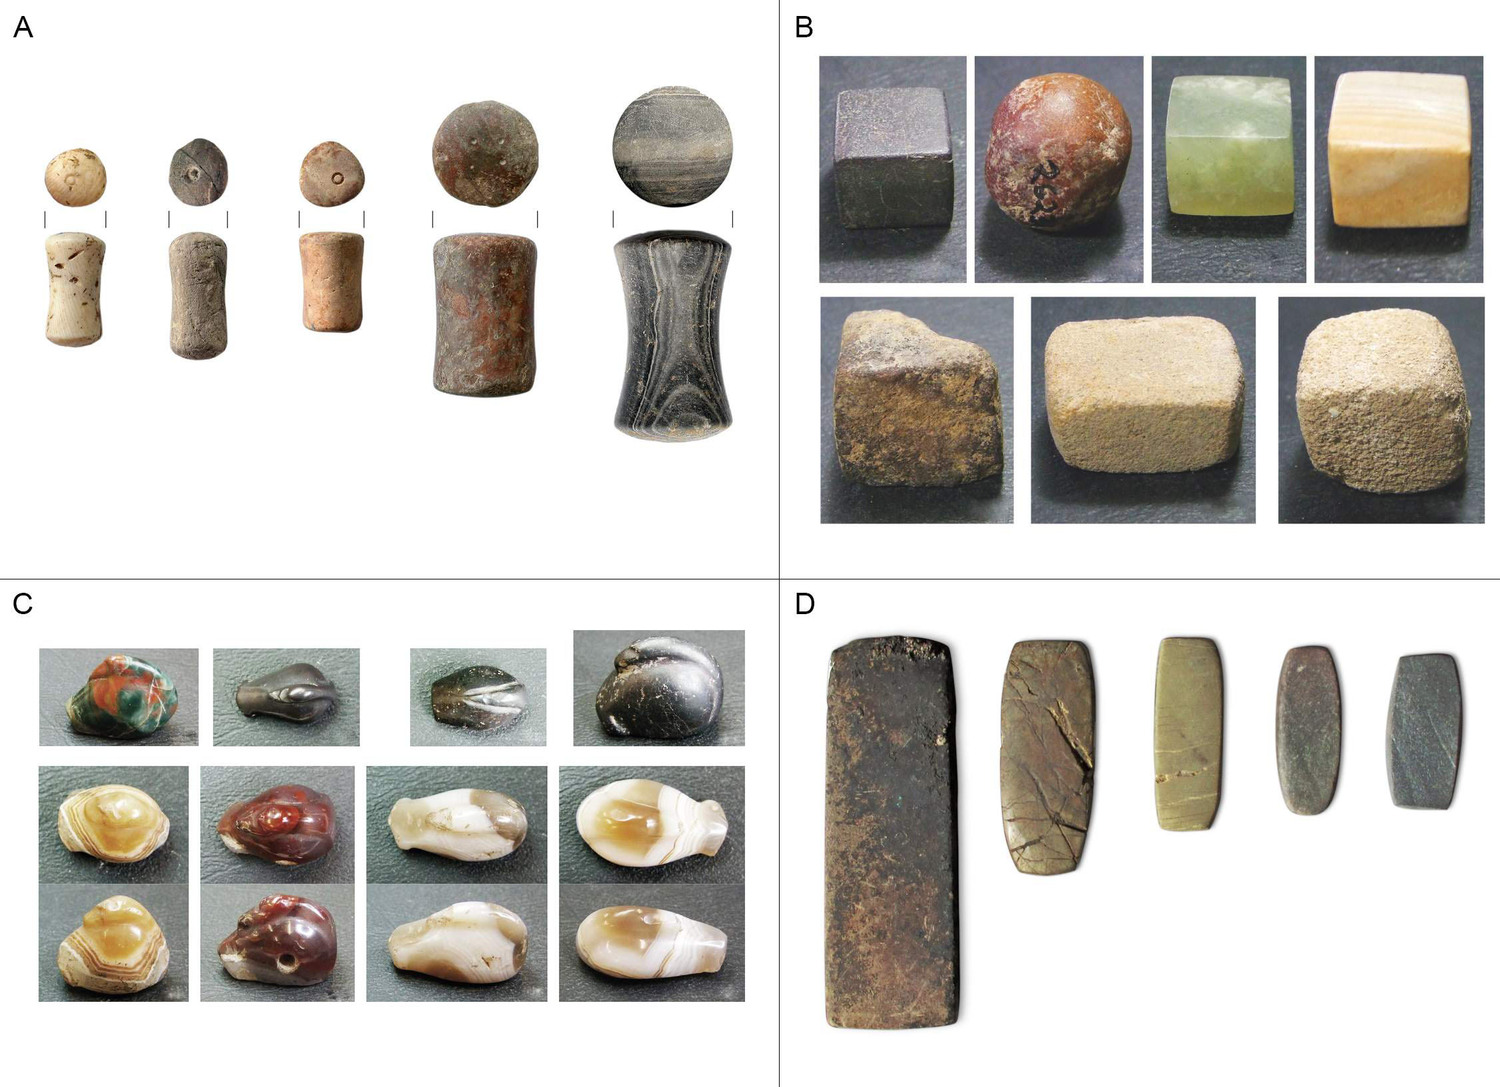 Examples of Western Eurasian balance weights of the Bronze Age. A: Spool-shaped weights from Tiryns, Greece (L Rahmstorf). B: Cubic weights from Dholavira, India (E Ascalone). C: Duck-shaped weights from Susa, Iran (E Ascalone). D: flat block weights from Lipari, Italy (N Ialongo).